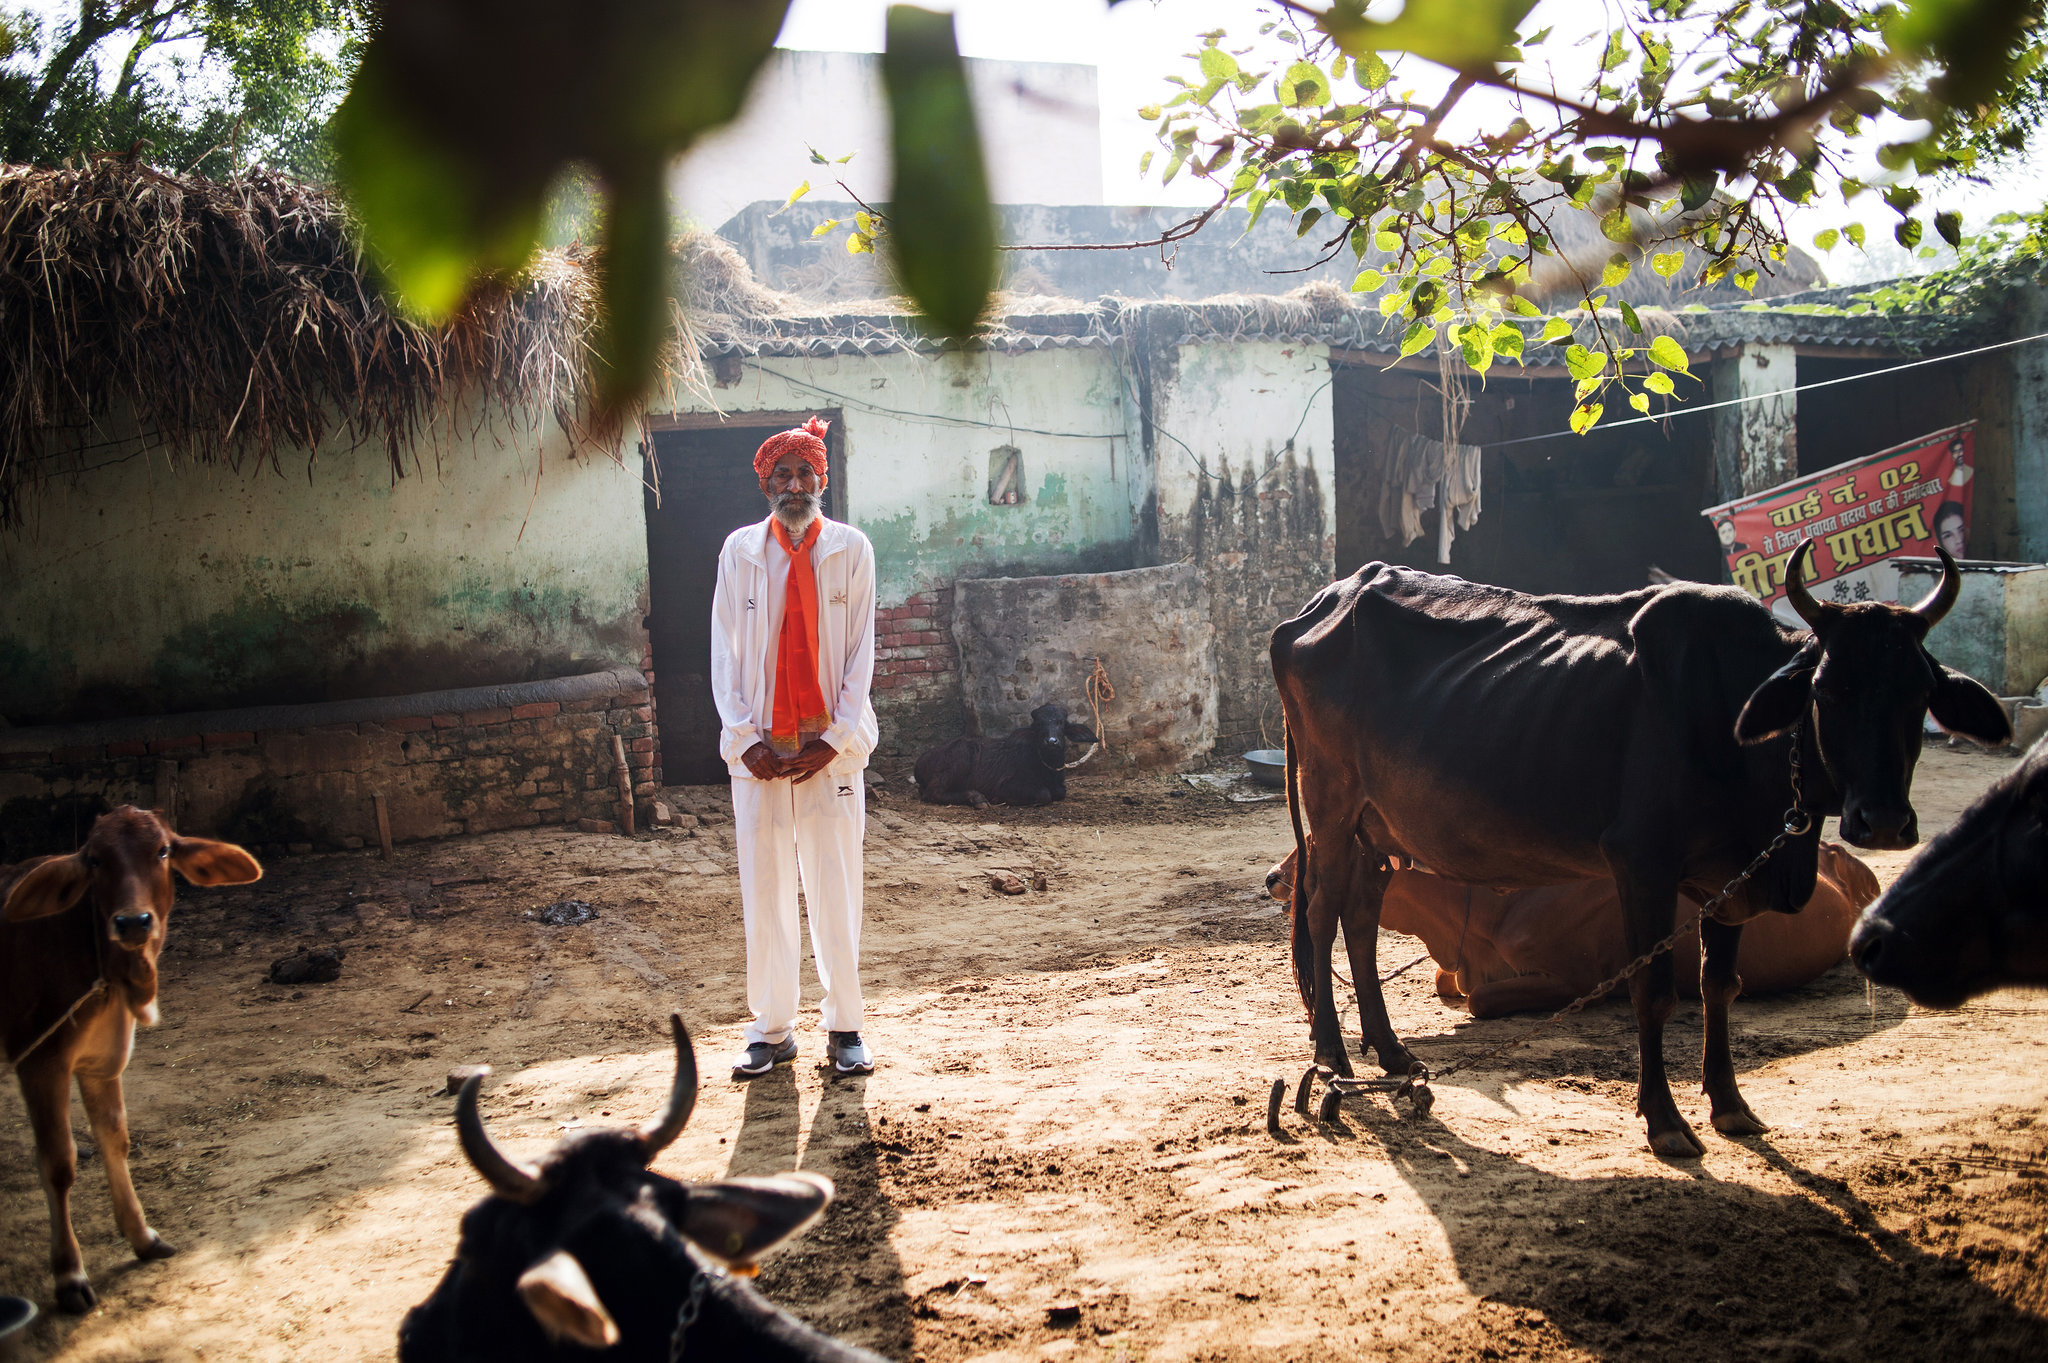 Singh, who is a herder, with his livestock at his home in Gudha. Photo: New York Times